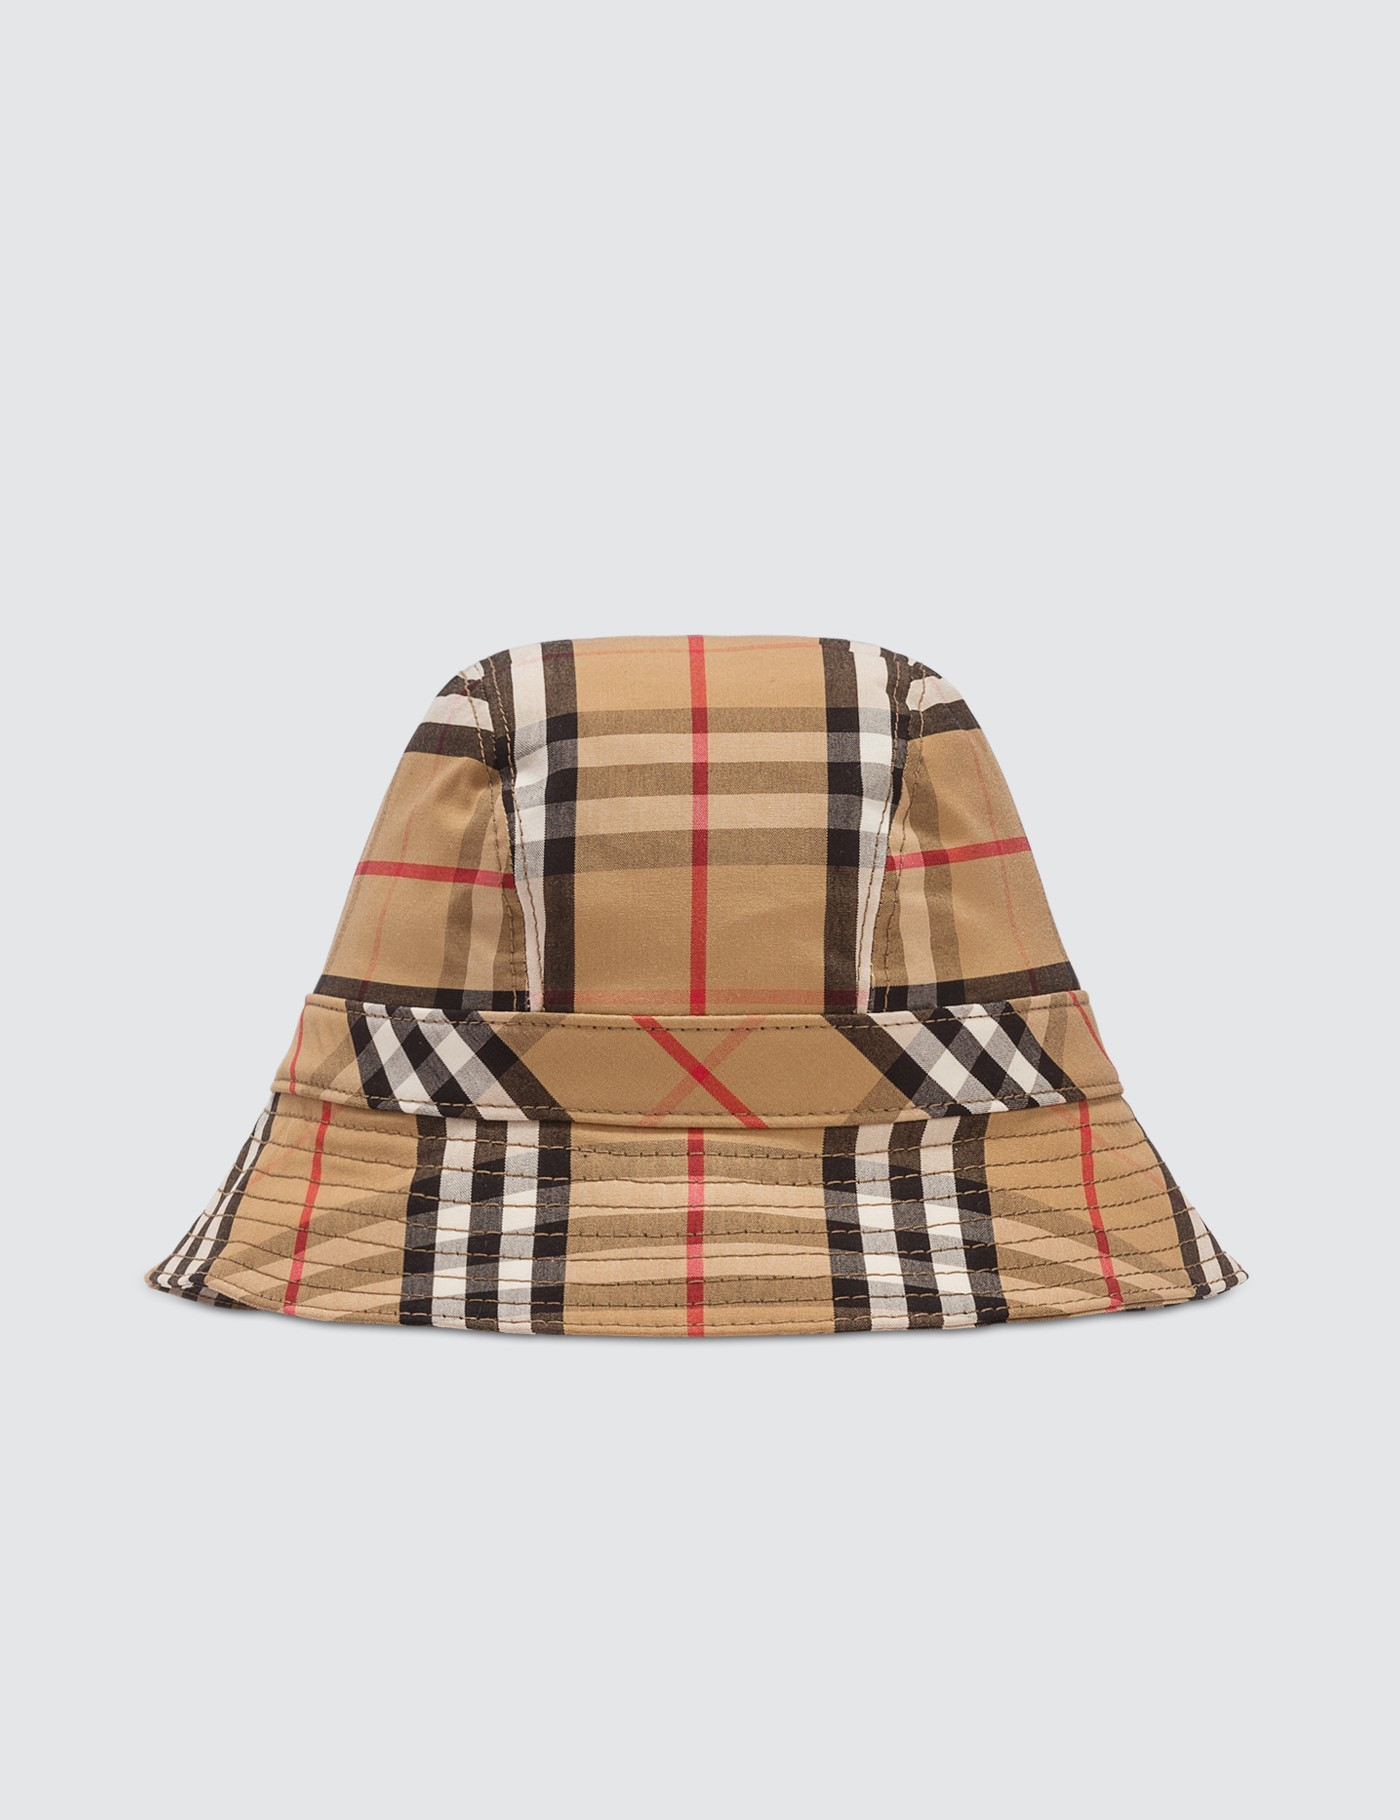 9bc96a5d429b Burberry Vintage Check Bucket Hat  Burberry Vintage Check Bucket Hat ...